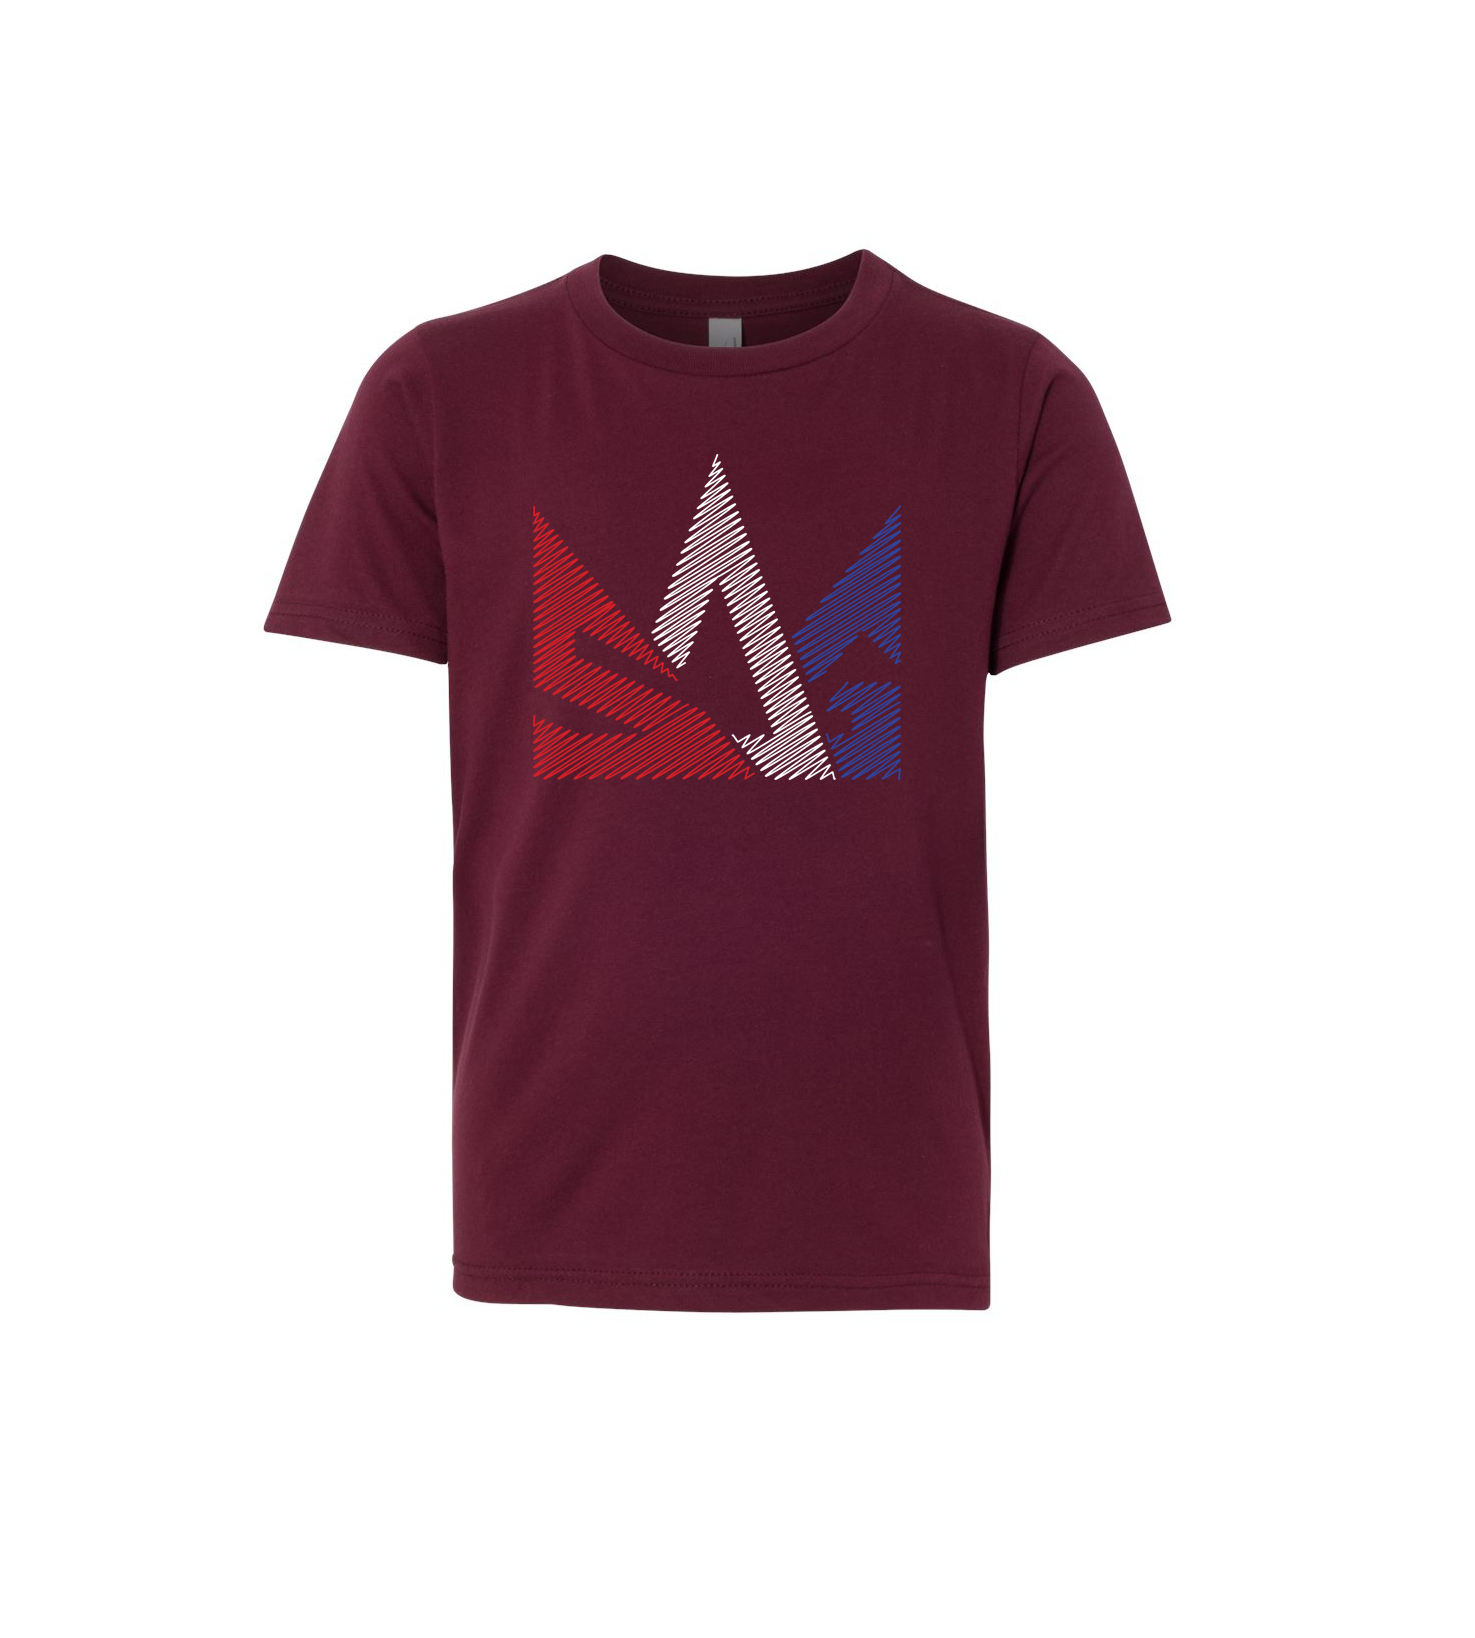 Kids tee mock up maroon